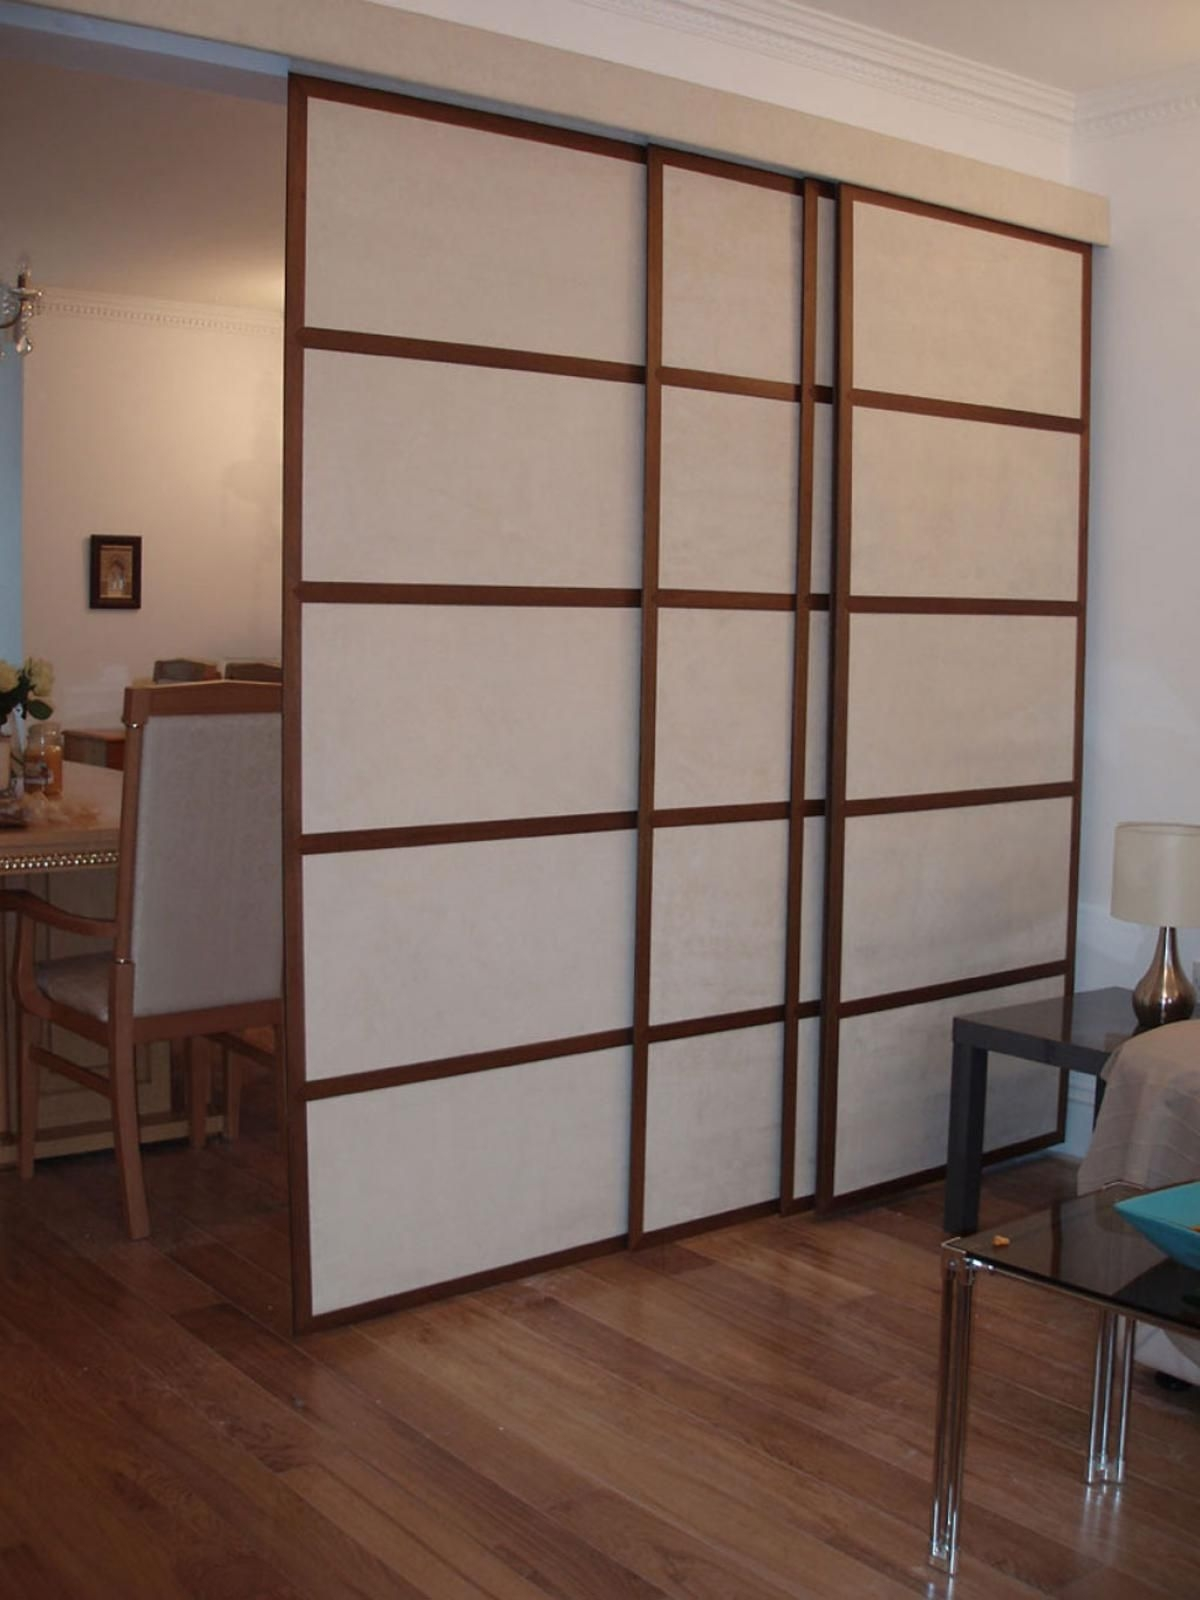 Sliding Room Dividers Diy. Simple Curtain Curtain Room .